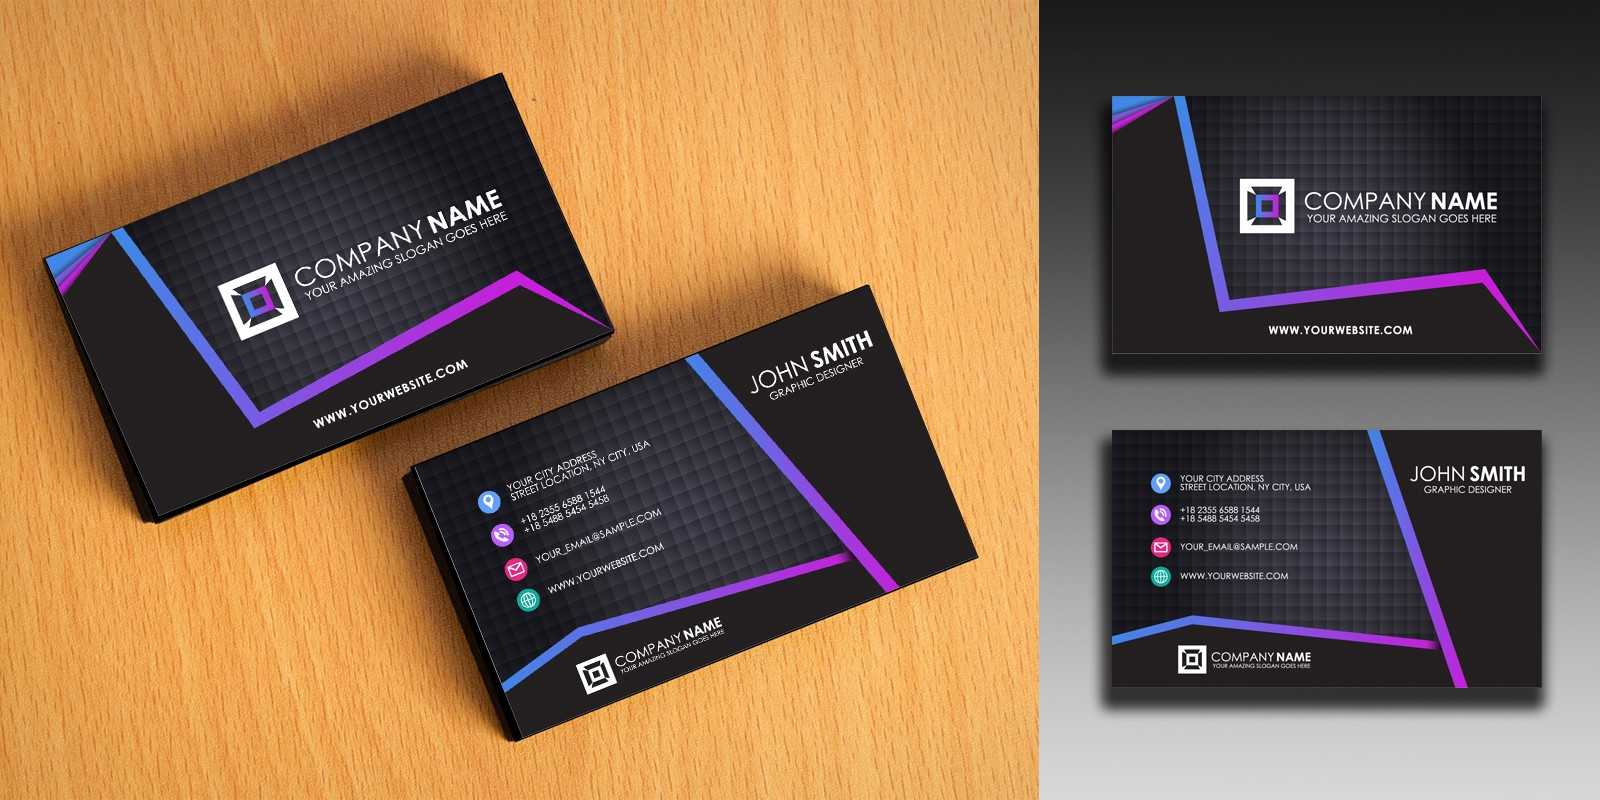 Clean And Simple Business Card Template In Buisness Card Templates